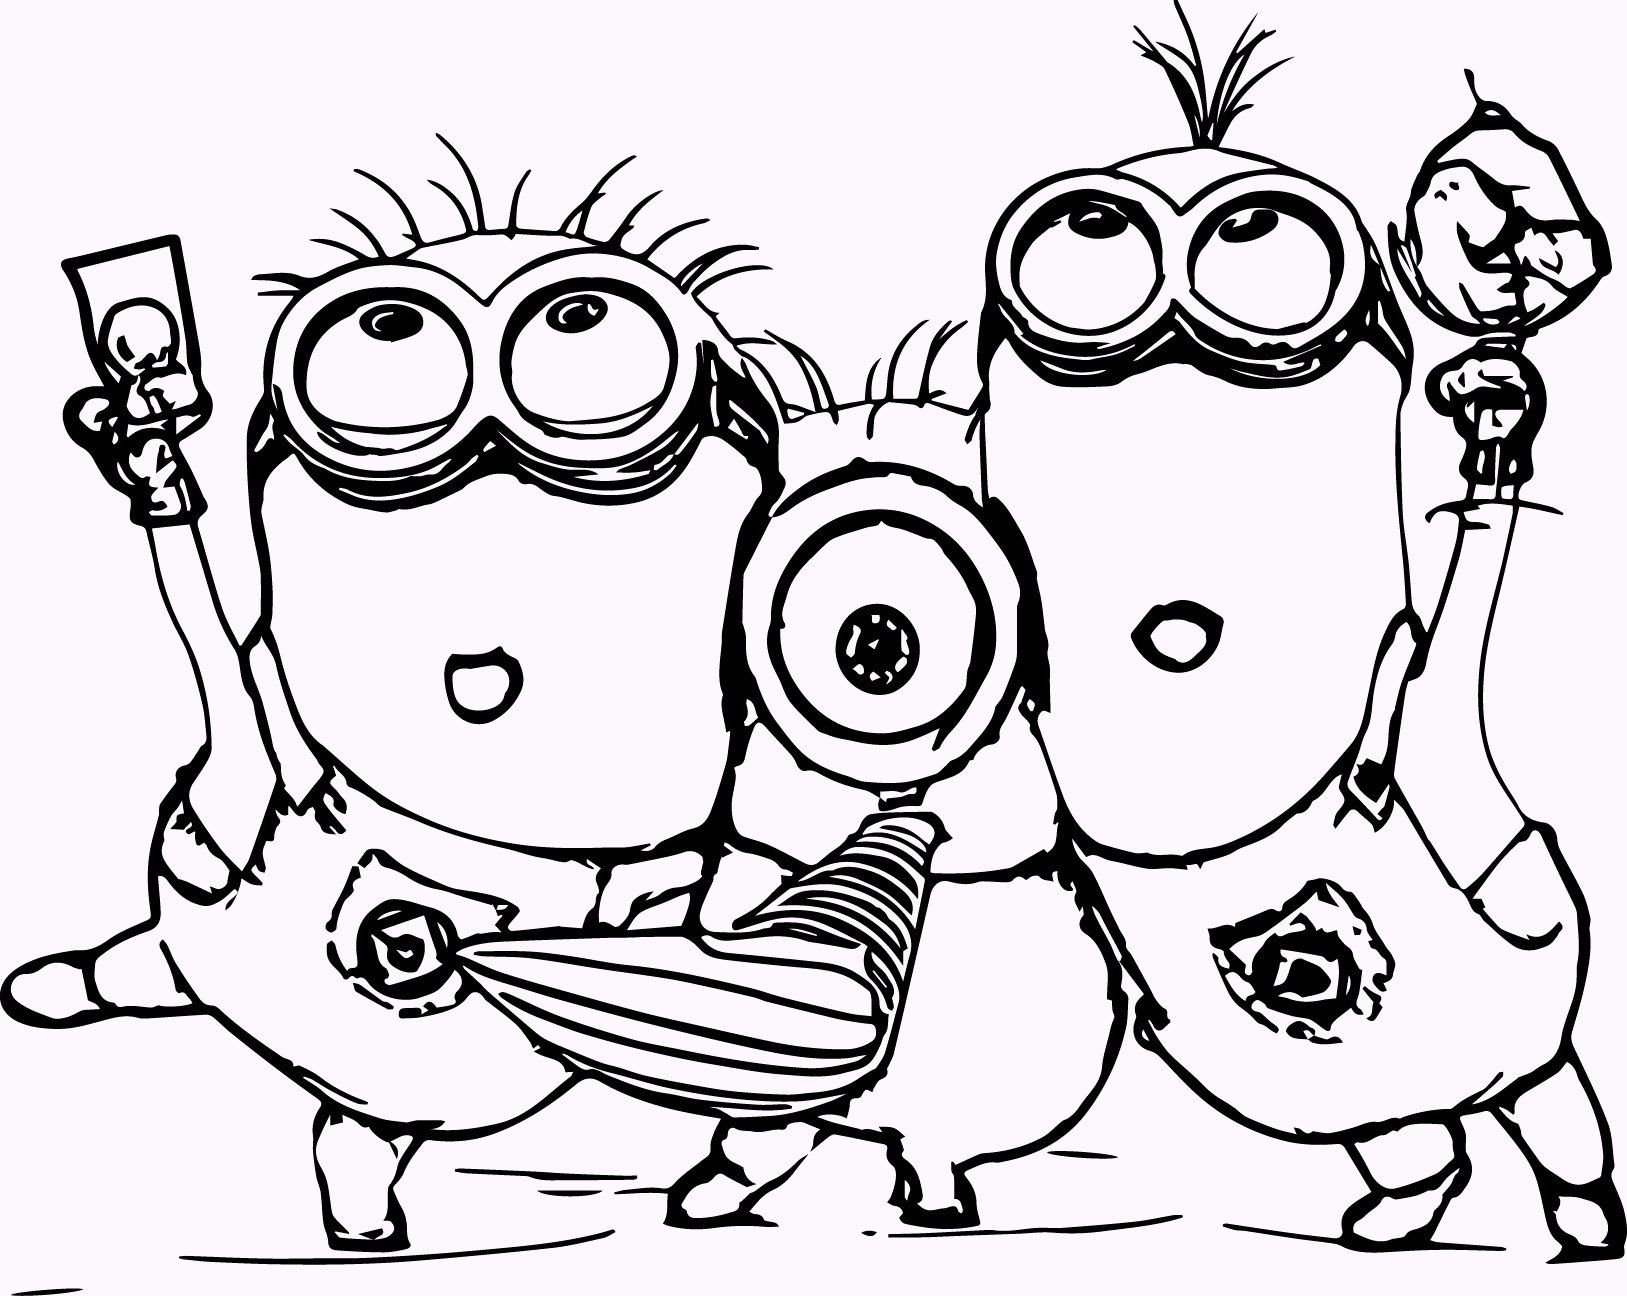 11 Cute Minions Coloring Pages Coloring Pages